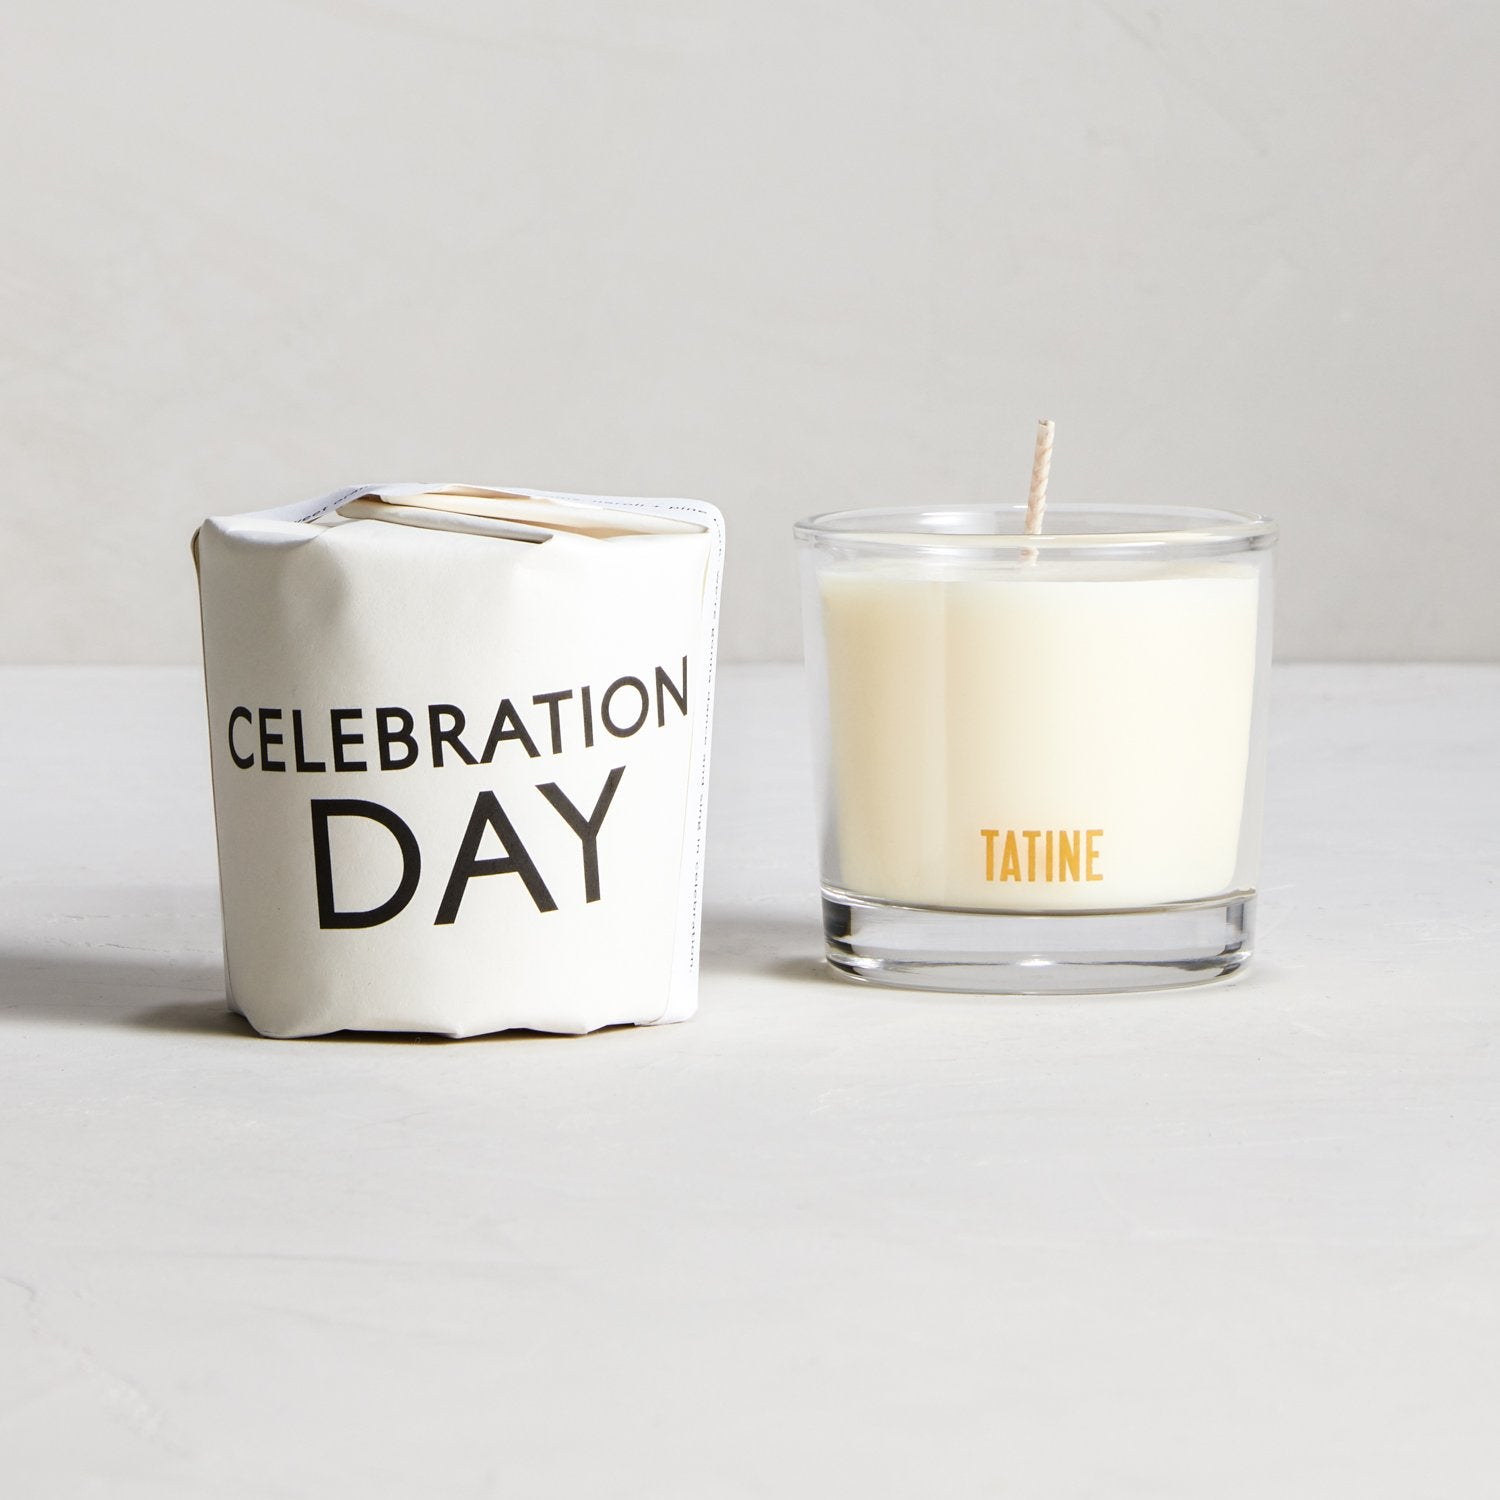 Tisane candle collection